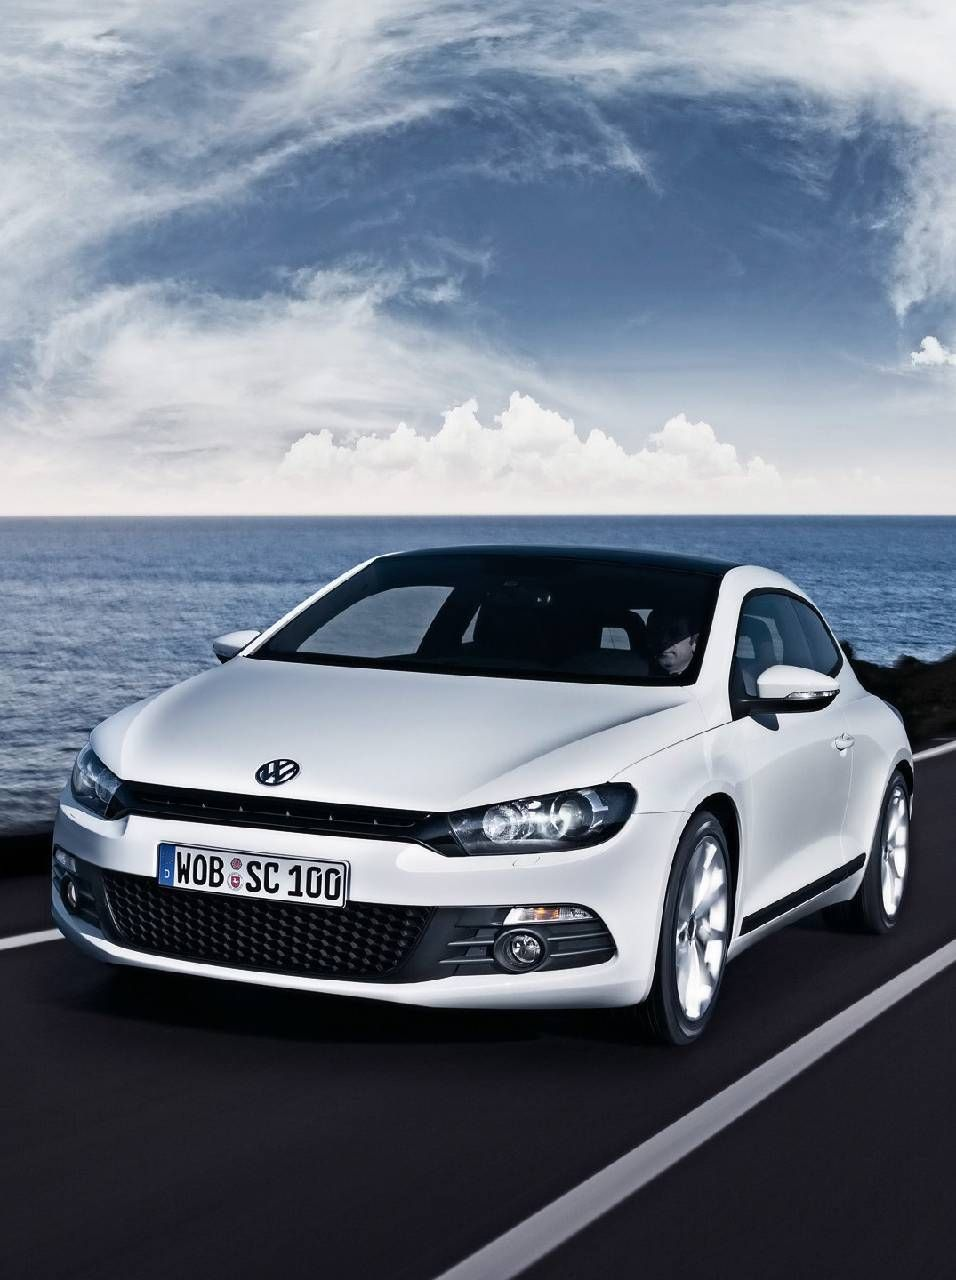 Download Volkswagen Sirocco Wallpaper by Da_ko c0 Free